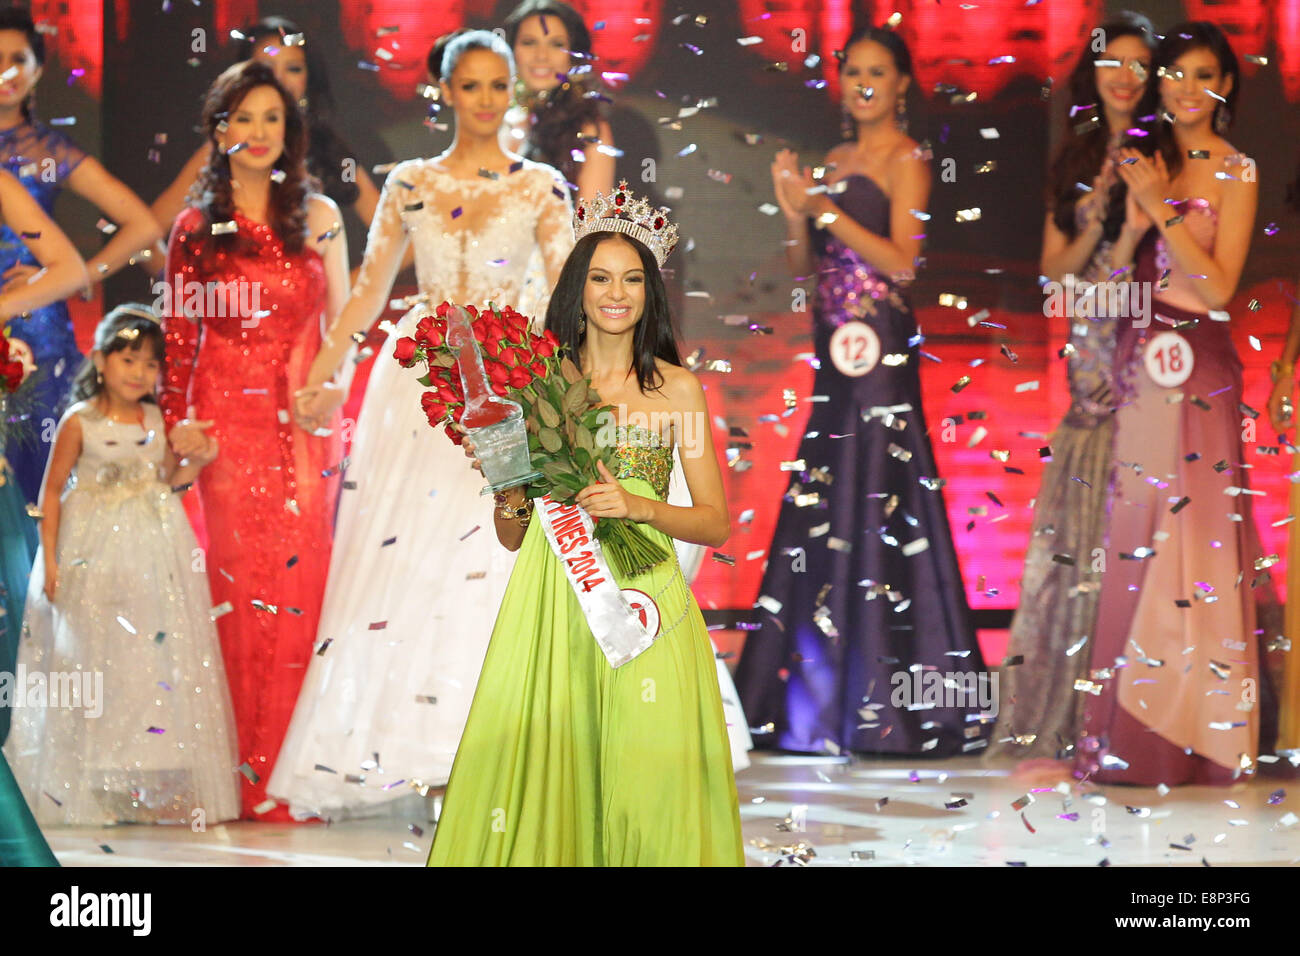 Pasay City, Phillipines. 13th October, 2014. Valerie Weigmann walks the aisle after winning the Miss World Philippines Stock Photo